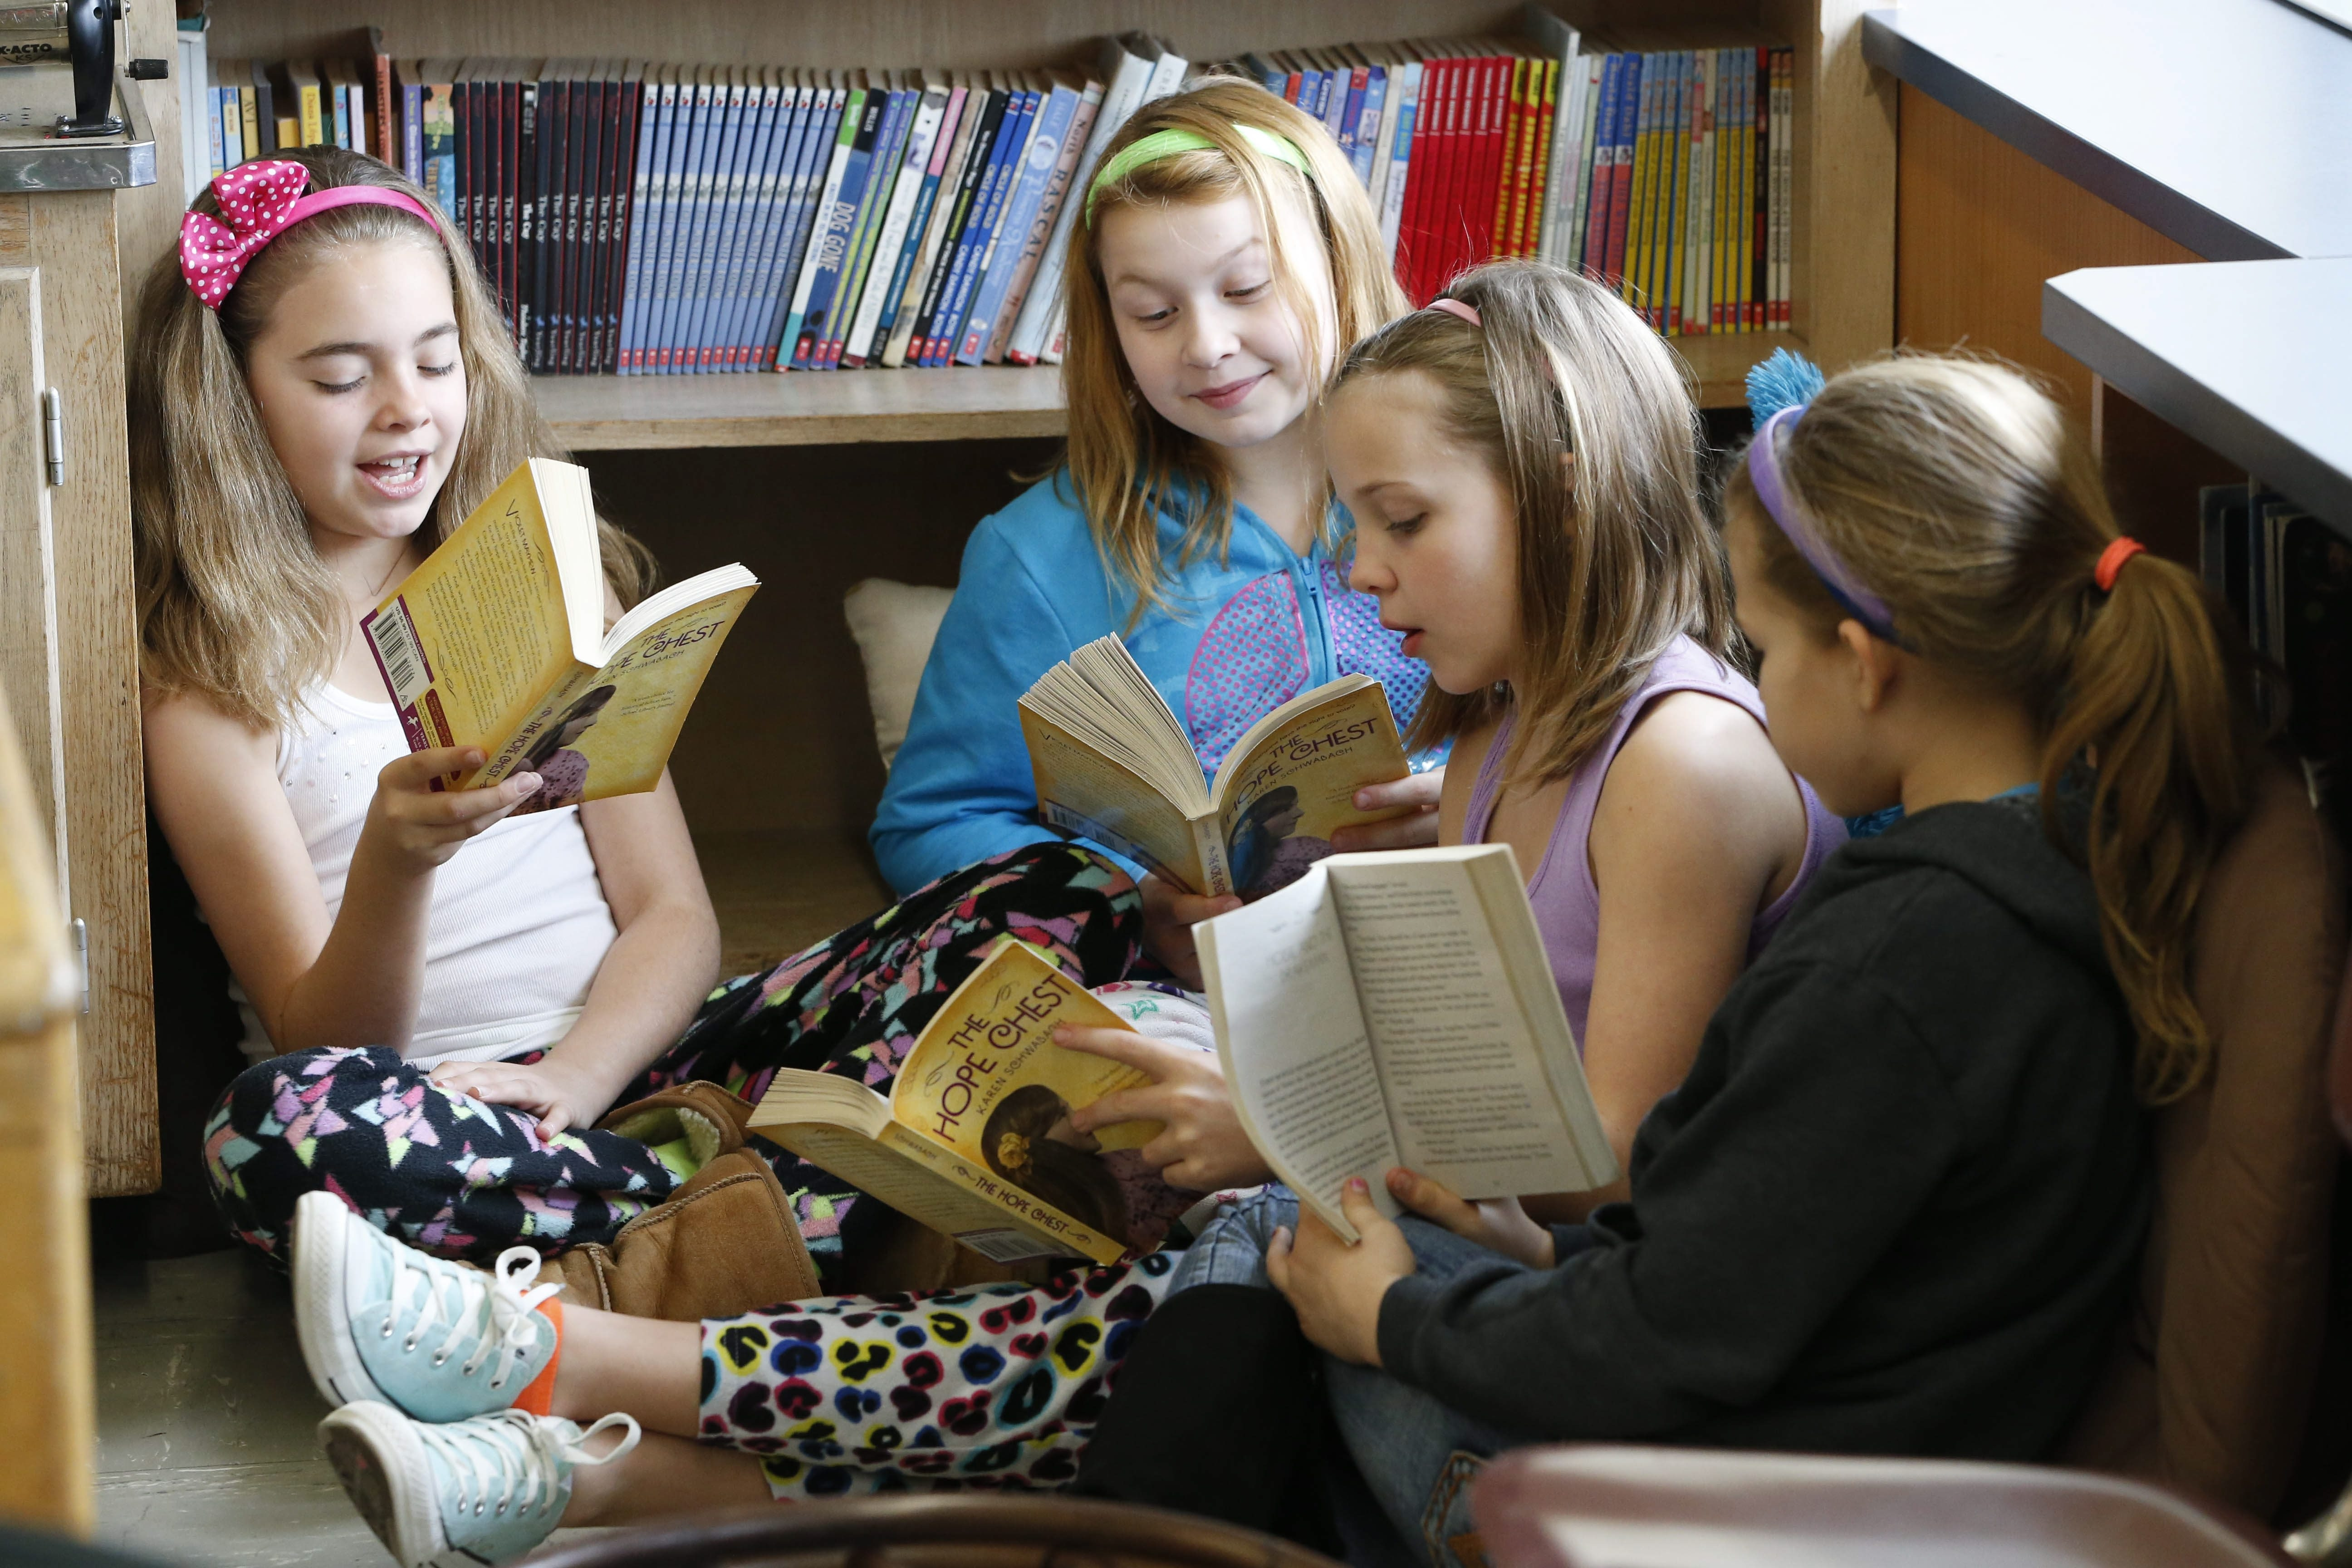 From left, Nora Jetter, Jasmine Root, Olivia Gibson and McKenna Eberle read together for a class assignment in Mrs. Bayer's fourth-grade class Friday at Alexander Hamilton Elementary School, which will soon close.